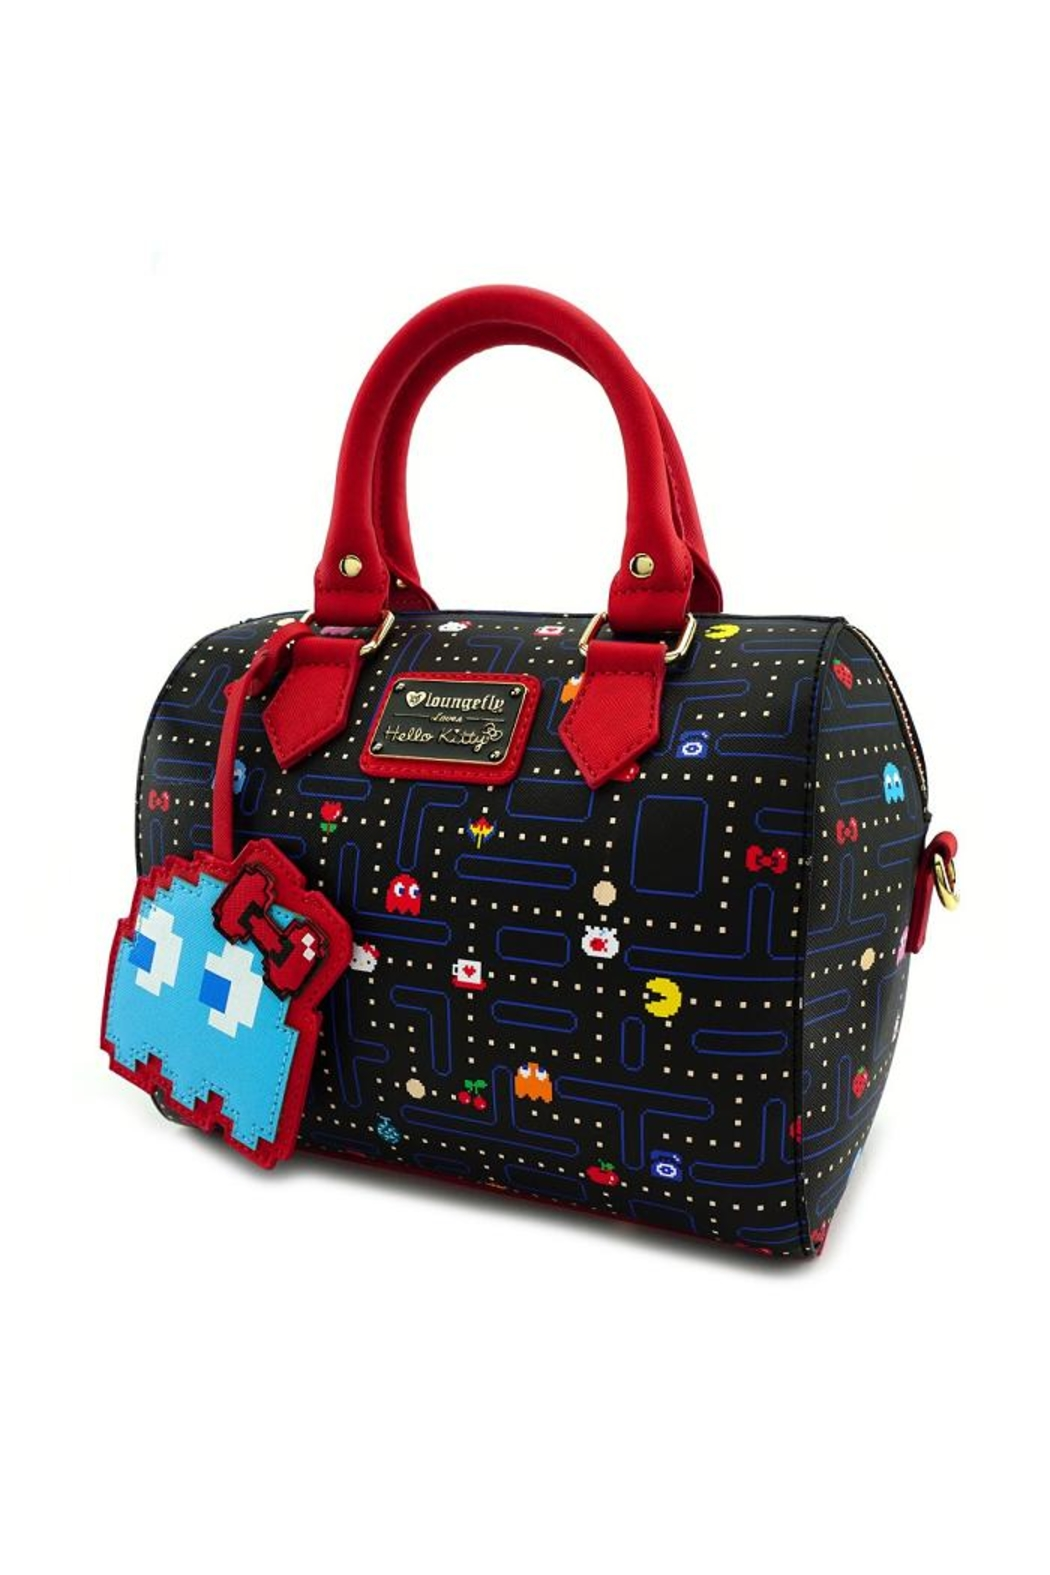 Loungefly Hello-Kitty Pac-Man Purse from Omaha by Daisy Jones ... 6035e378b3079